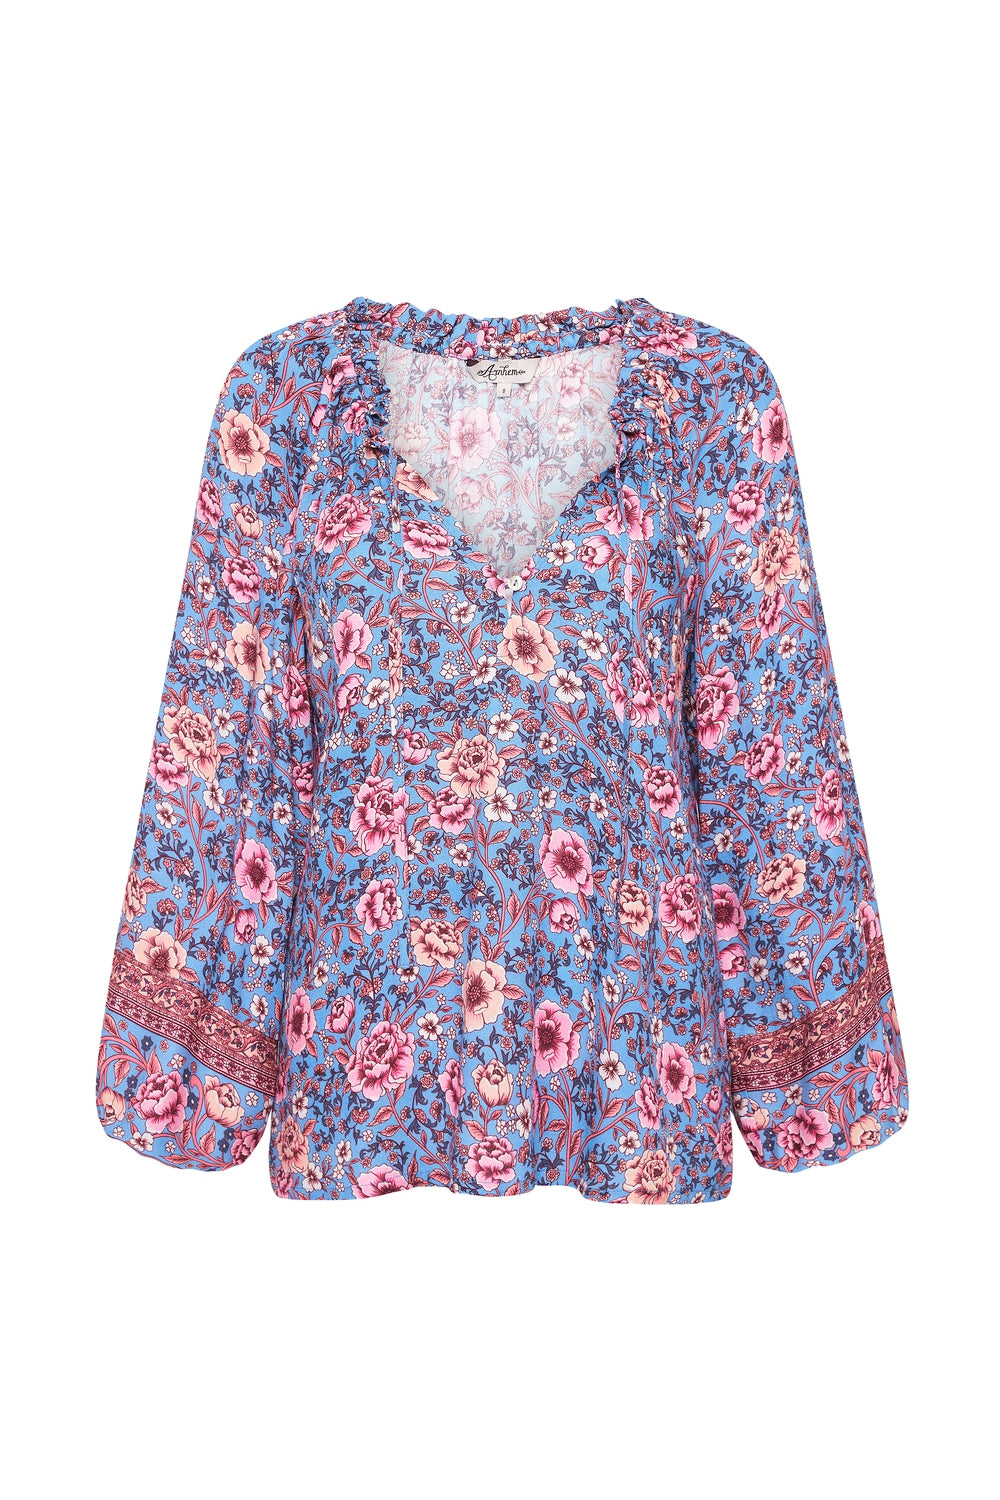 Juliette Blouse in Bluebelle